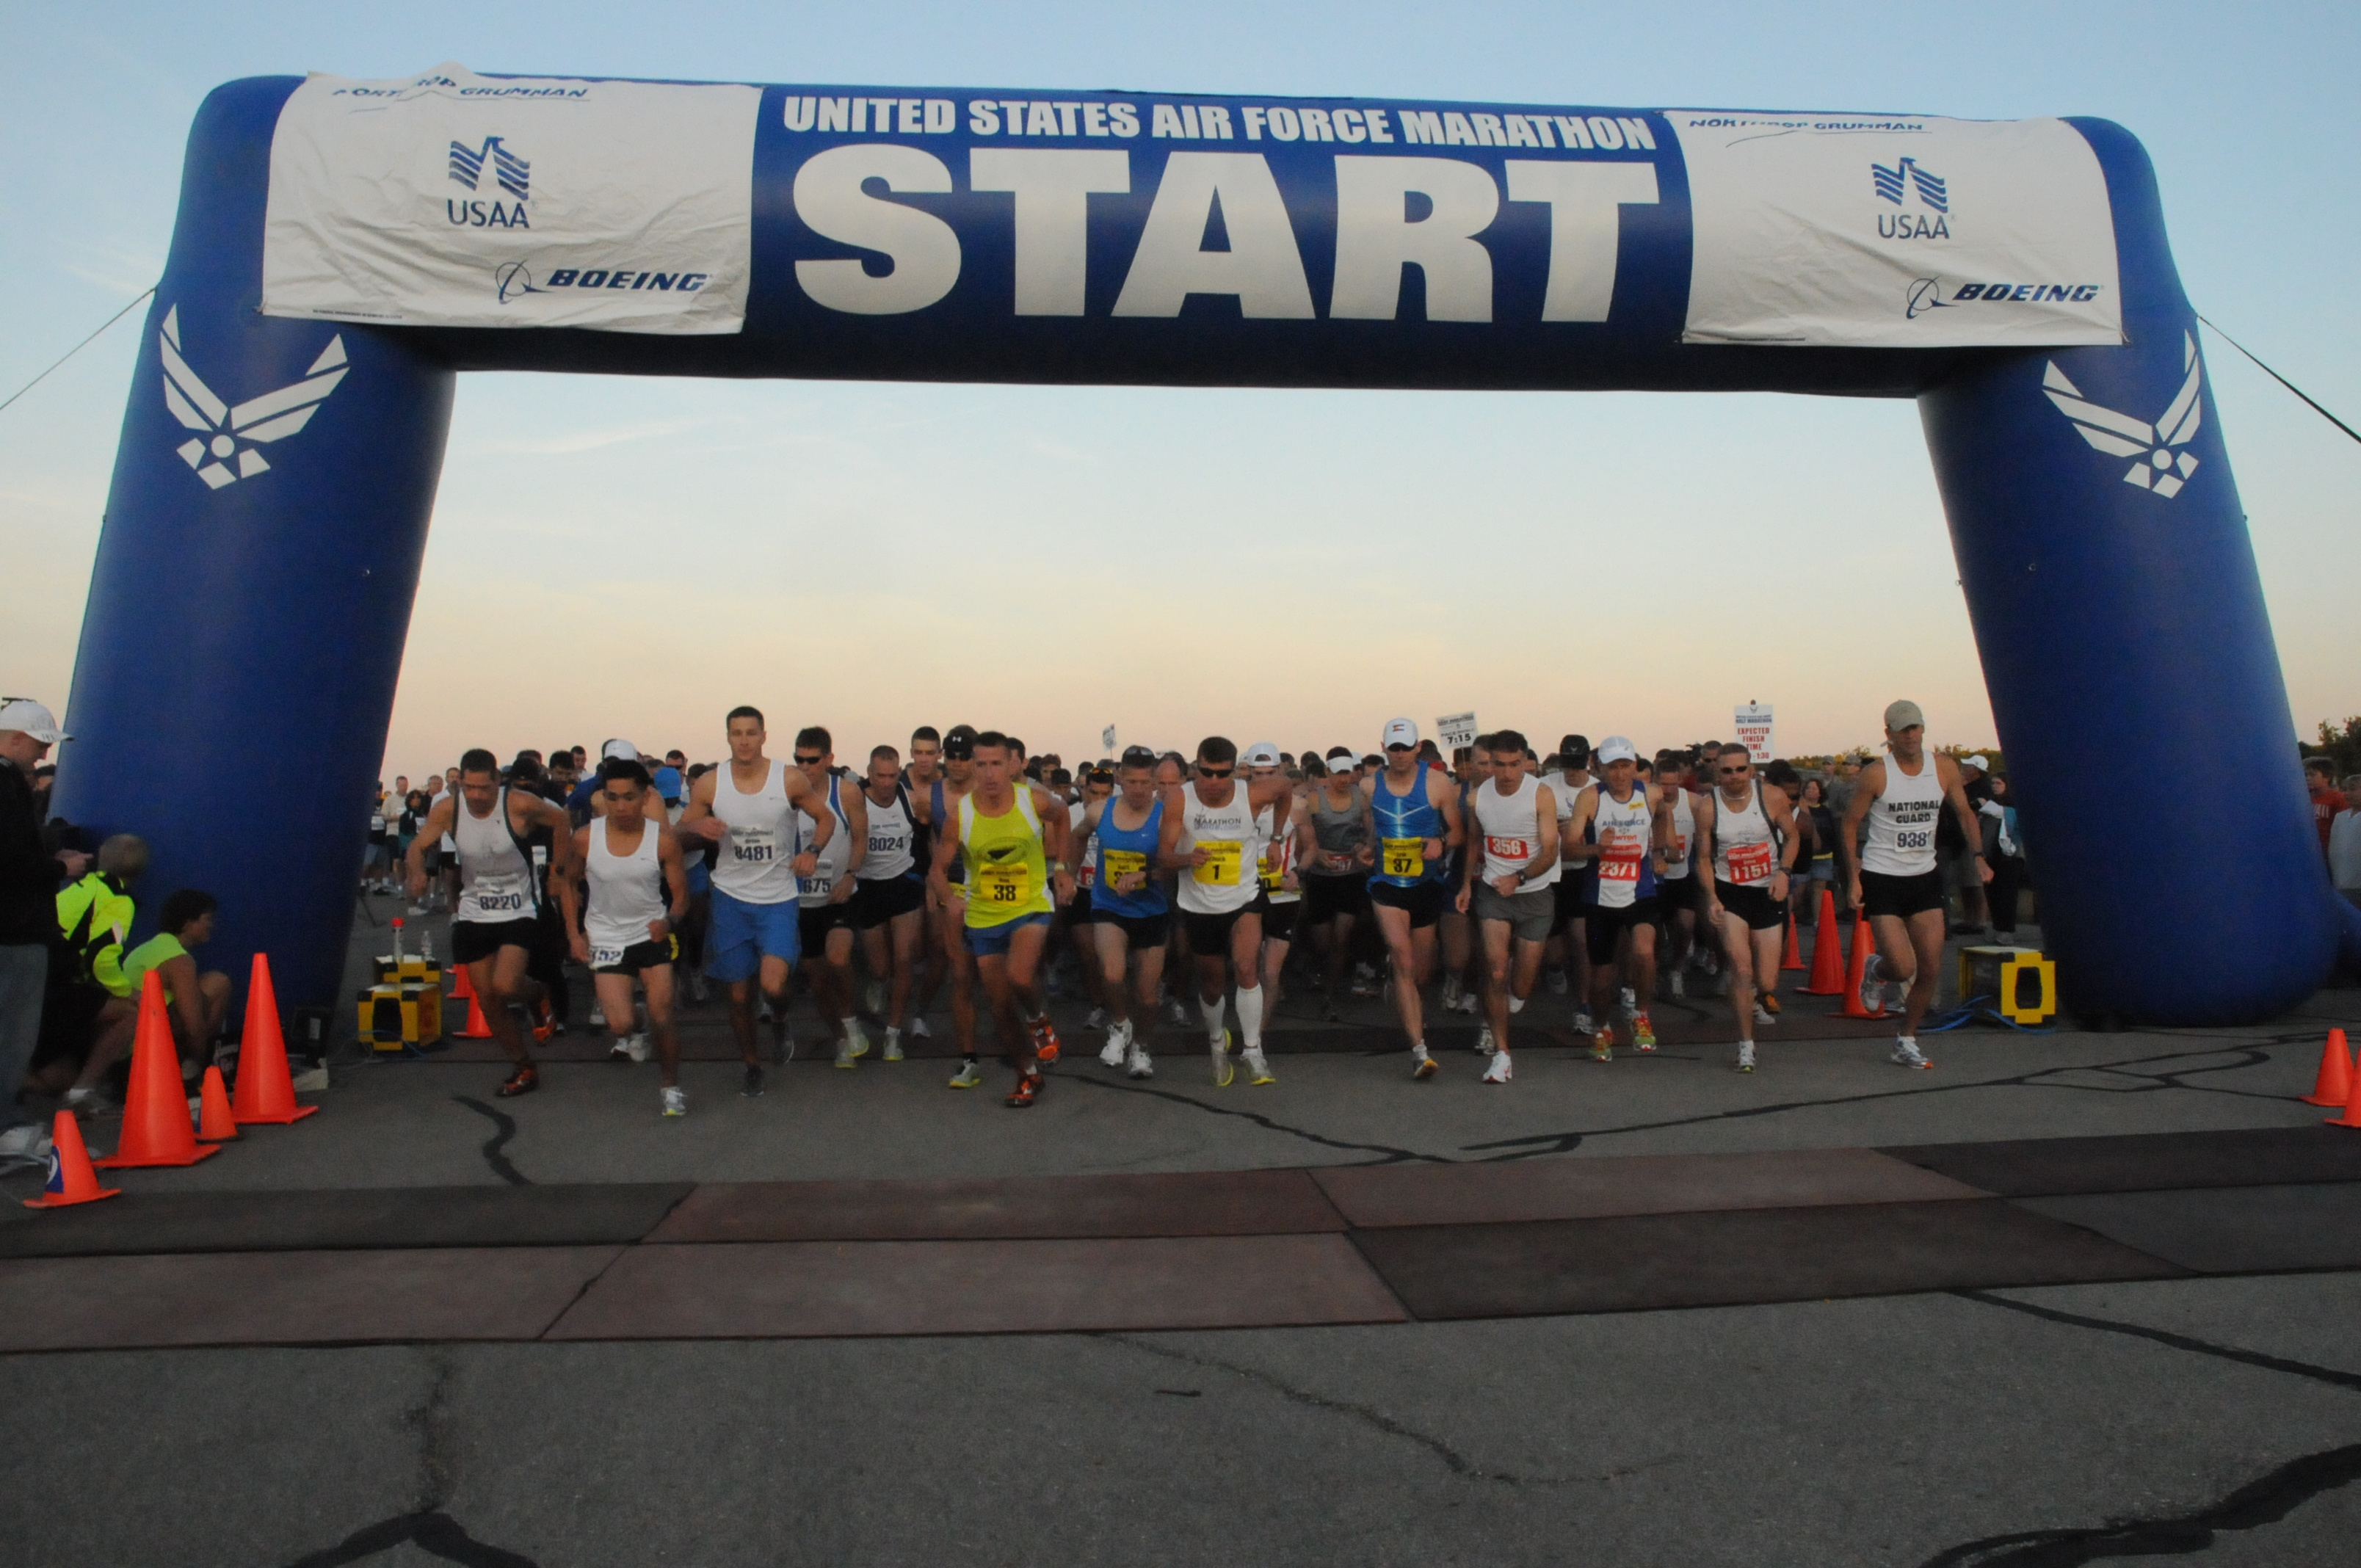 Military Pay Chart 2015 Usaa: Record crowd turns out for Air Force Marathon e U.S. Air Force ,Chart